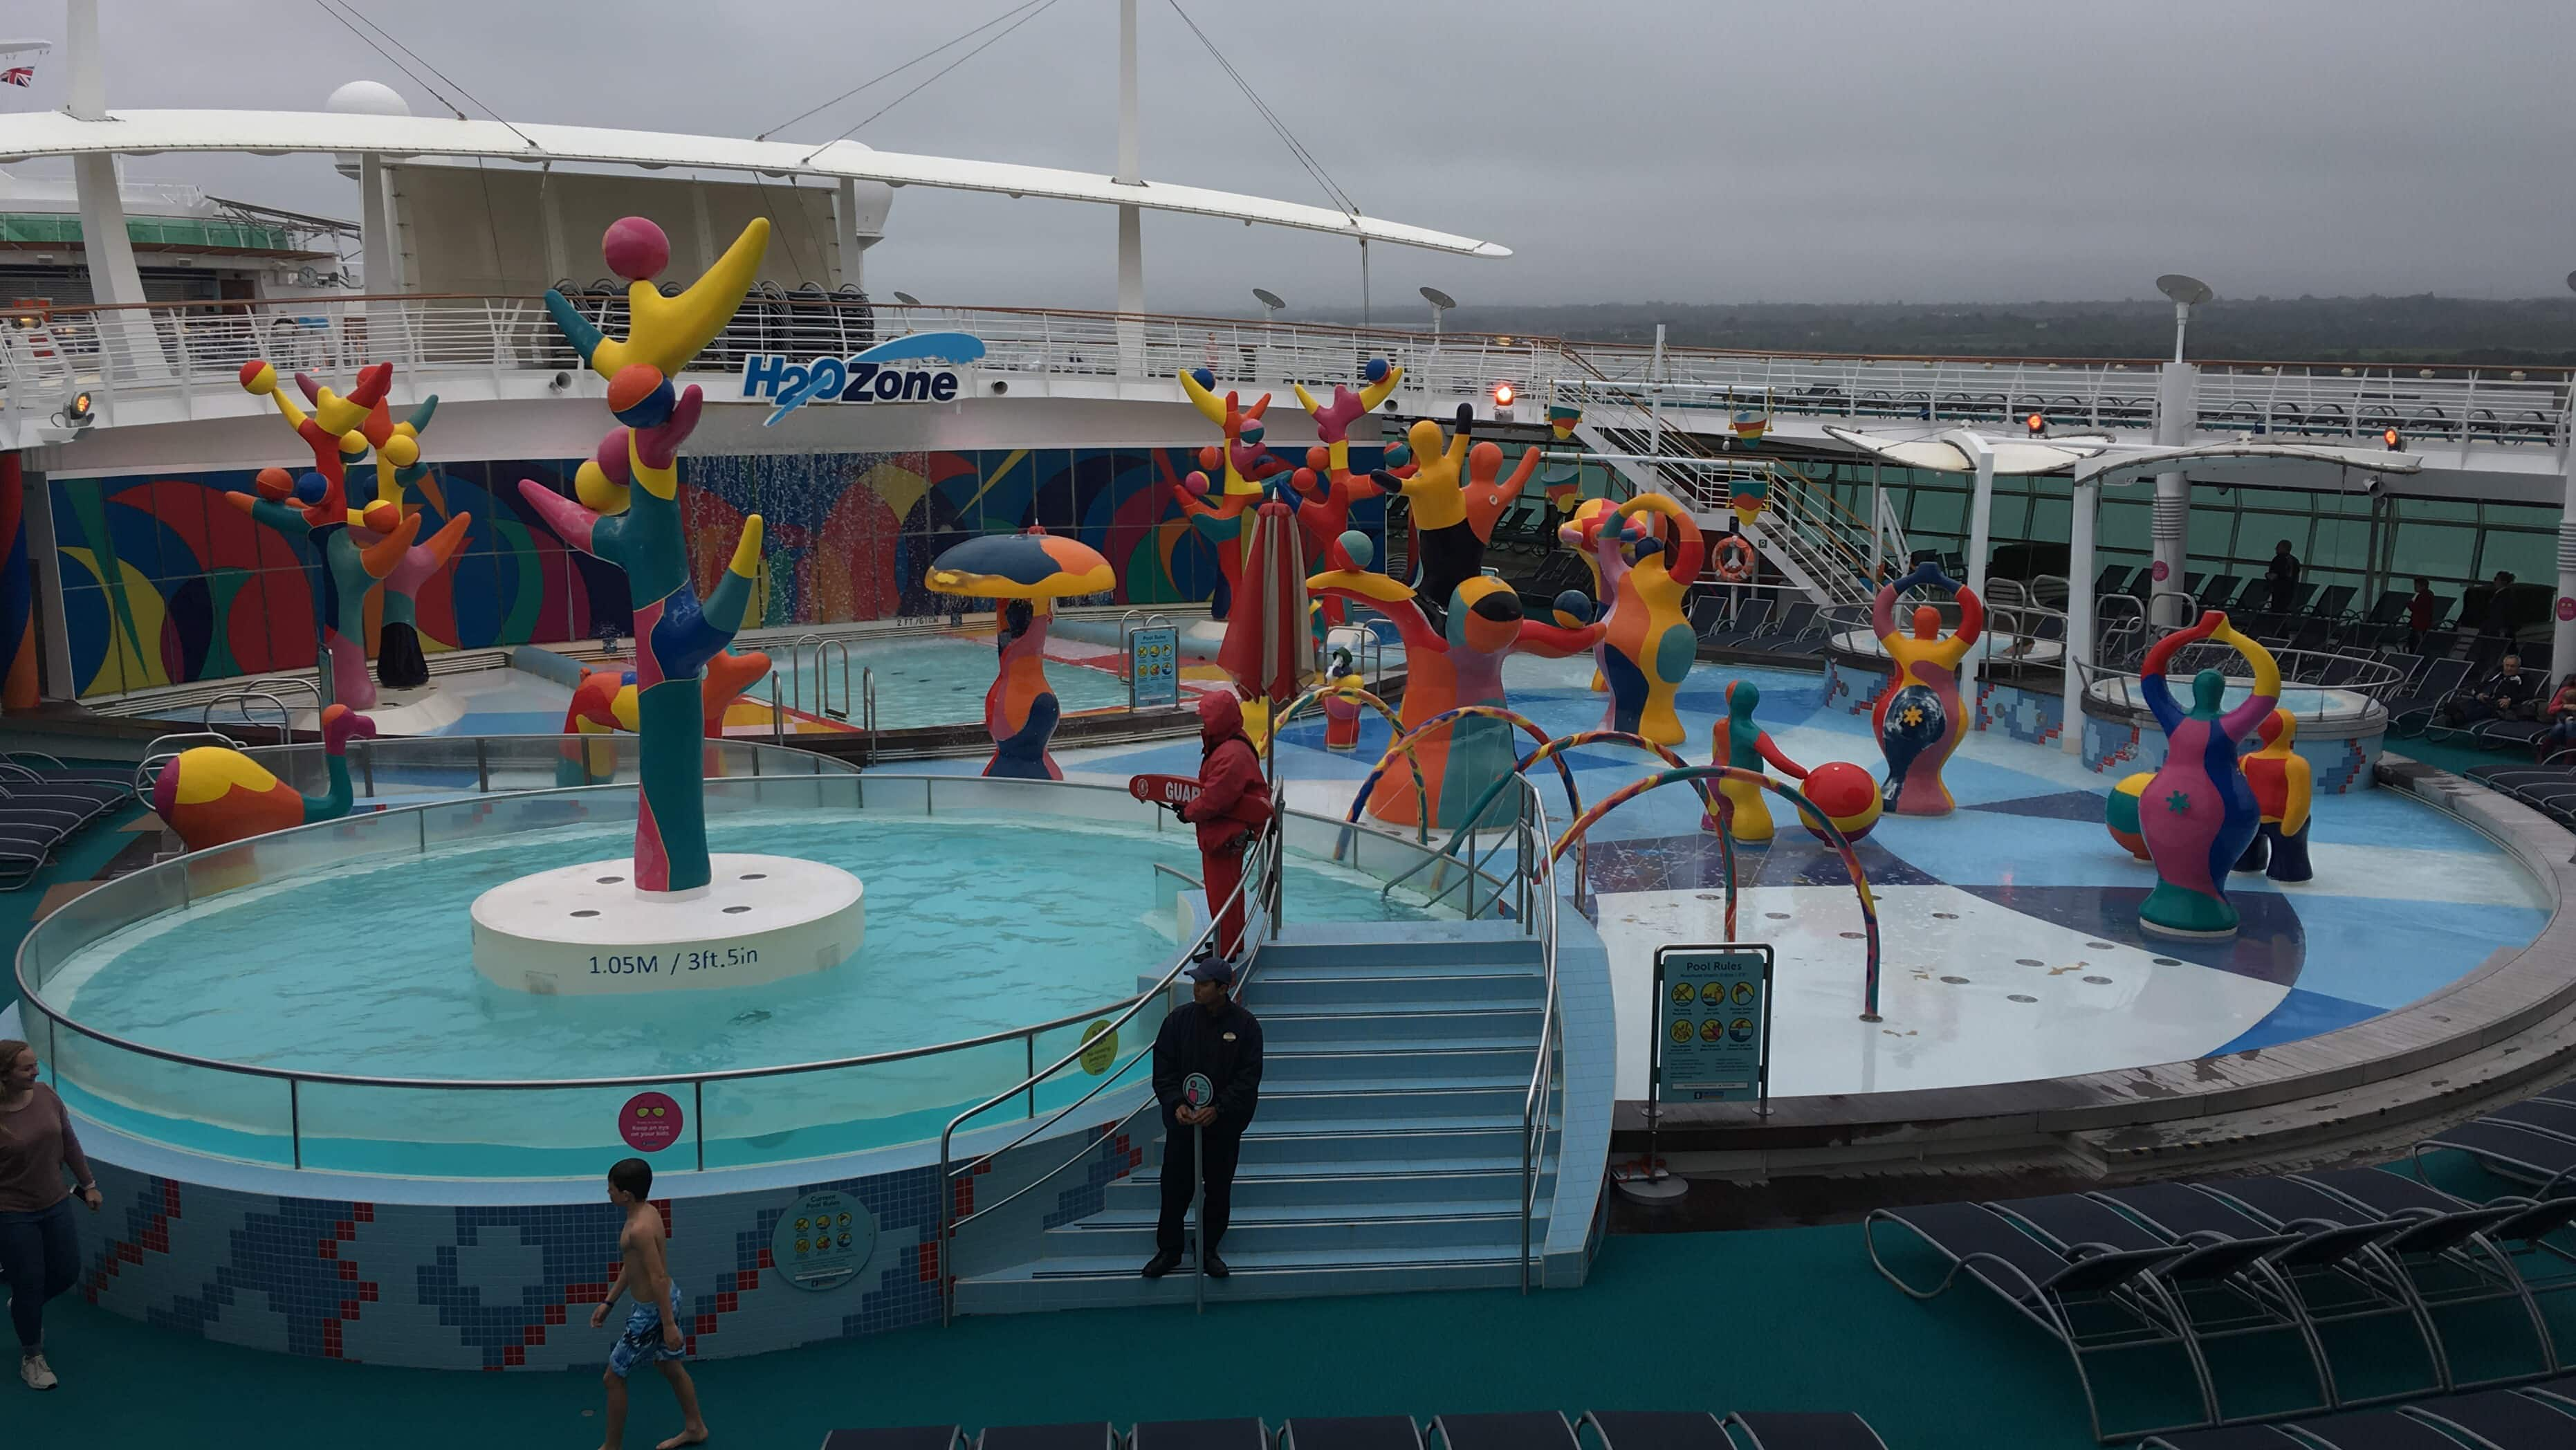 royal caribbean independence of the seas h20 zone swimming pool kids club